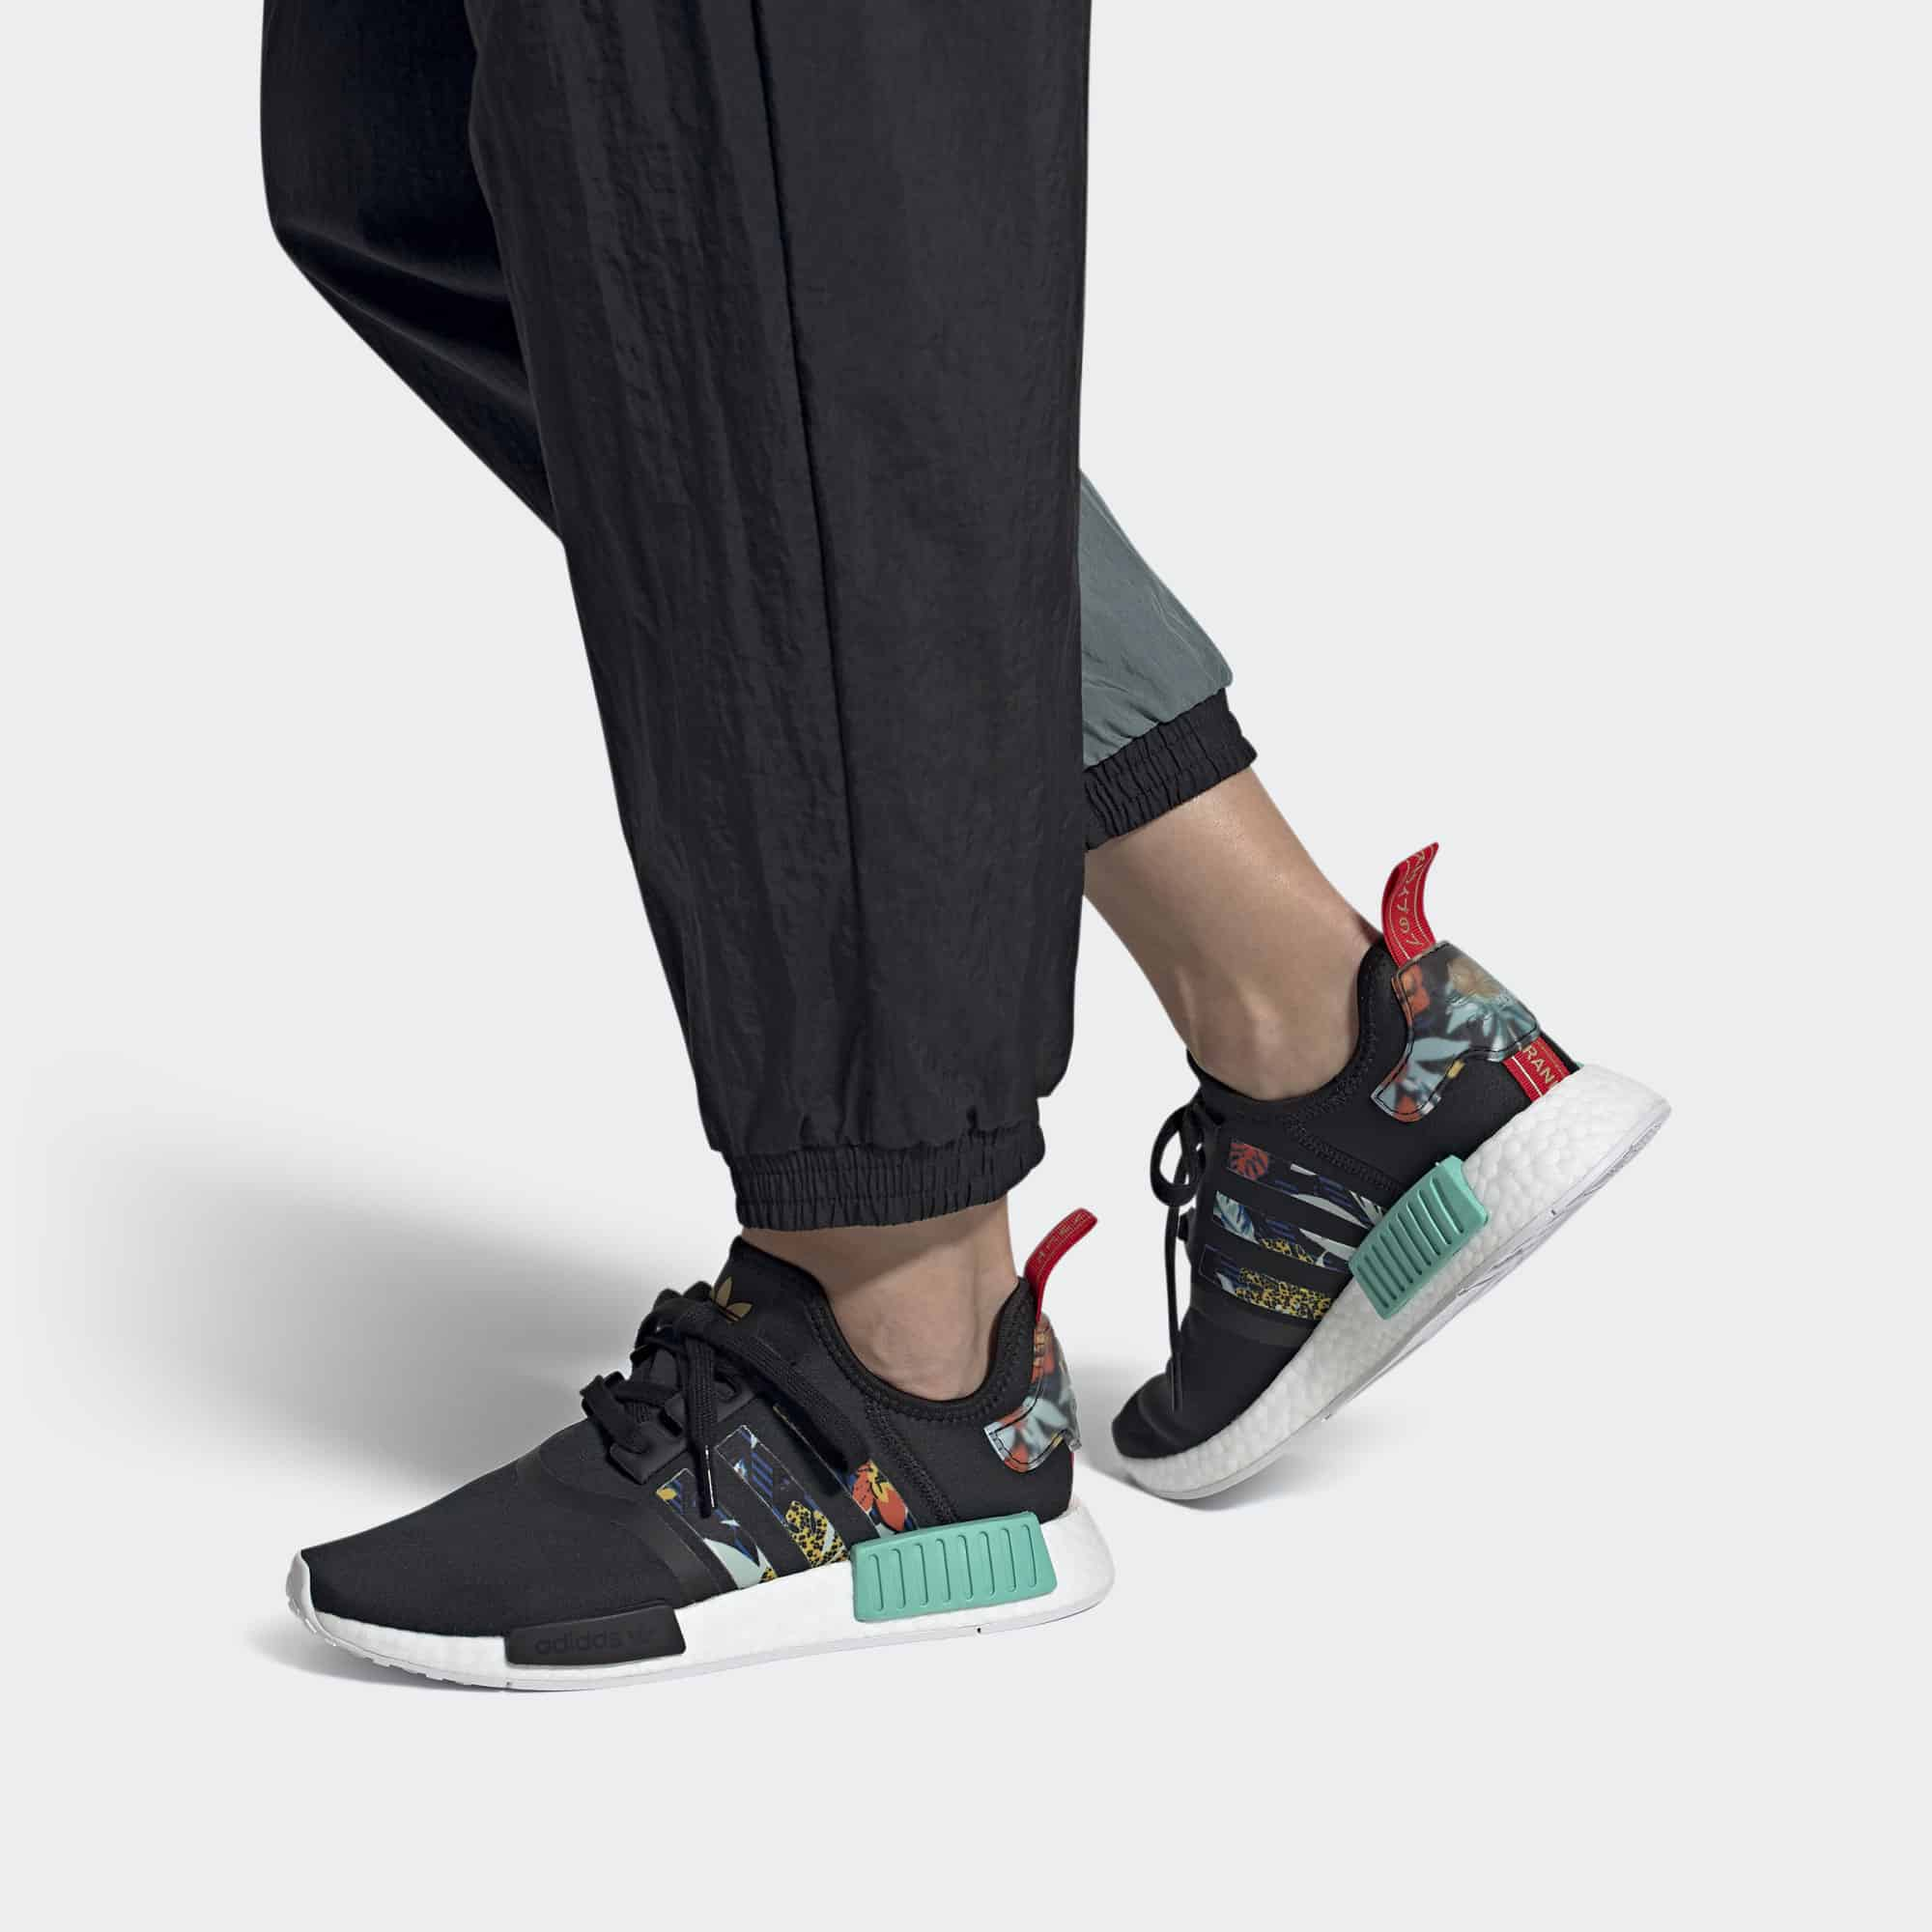 Womens Adidas NMD R1 HER Studios On Feet